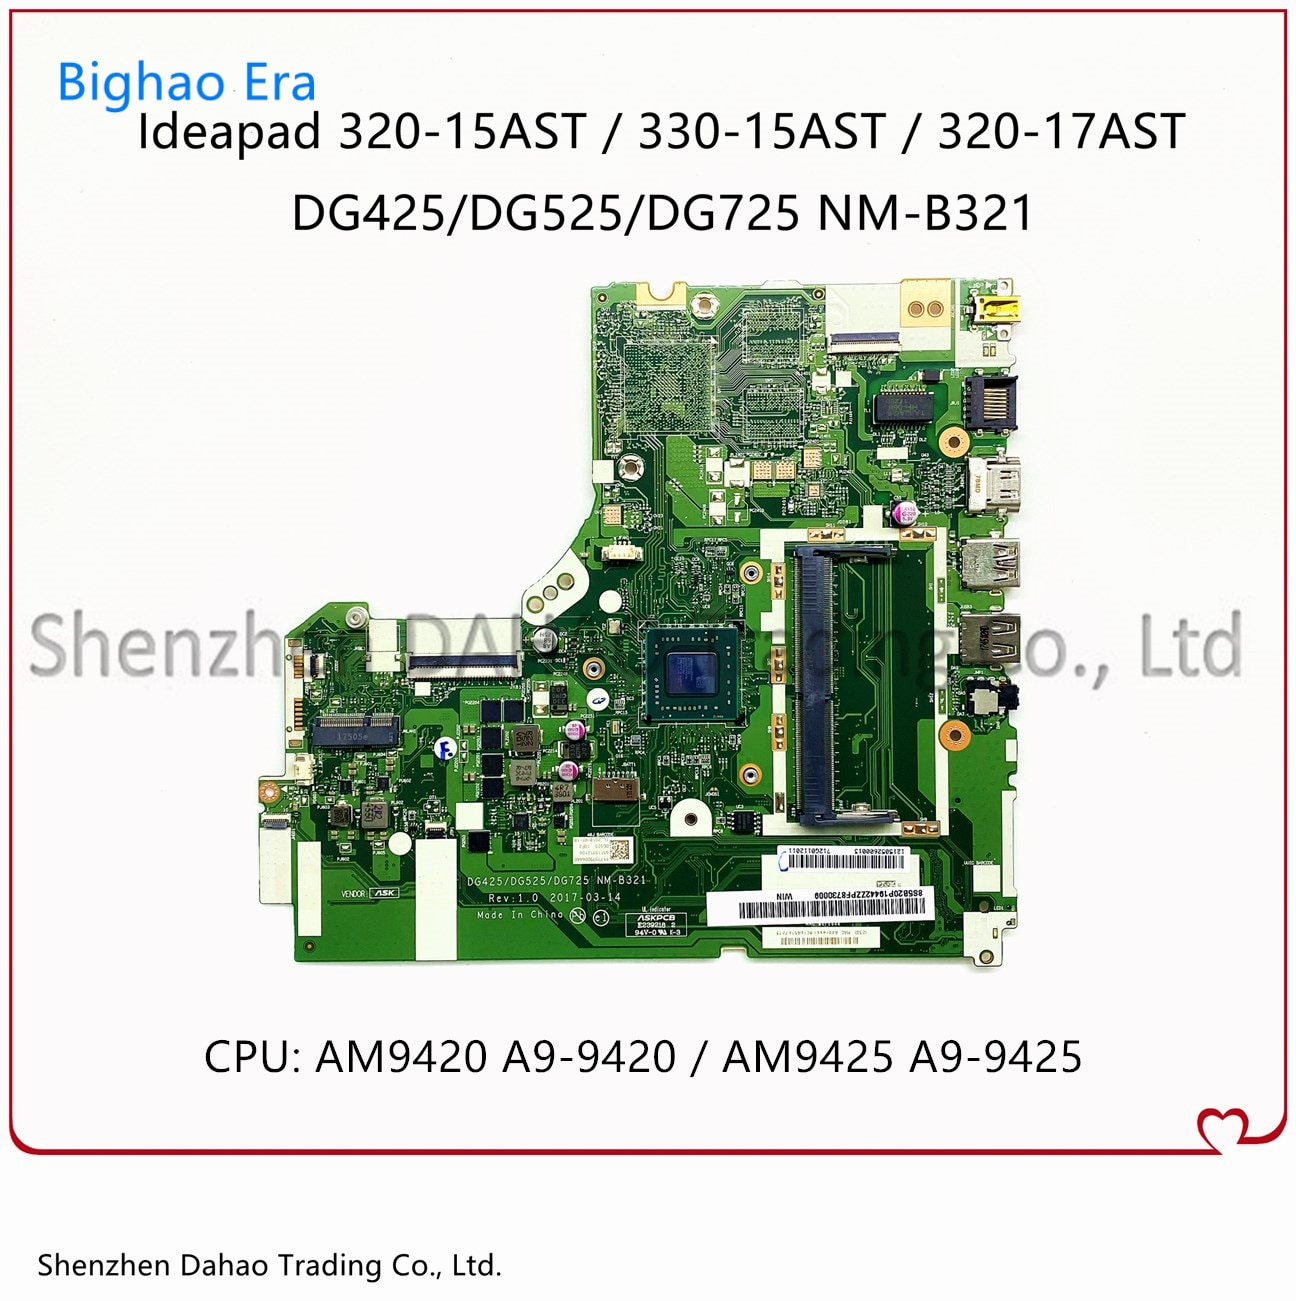 Fru:5B20P19430 For Lenovo 320-15AST 320-17AST 330-15AST Laptop Motherboard NM-B321 MB With A9-9420/9425 CPU DDR4 100% Fully Test